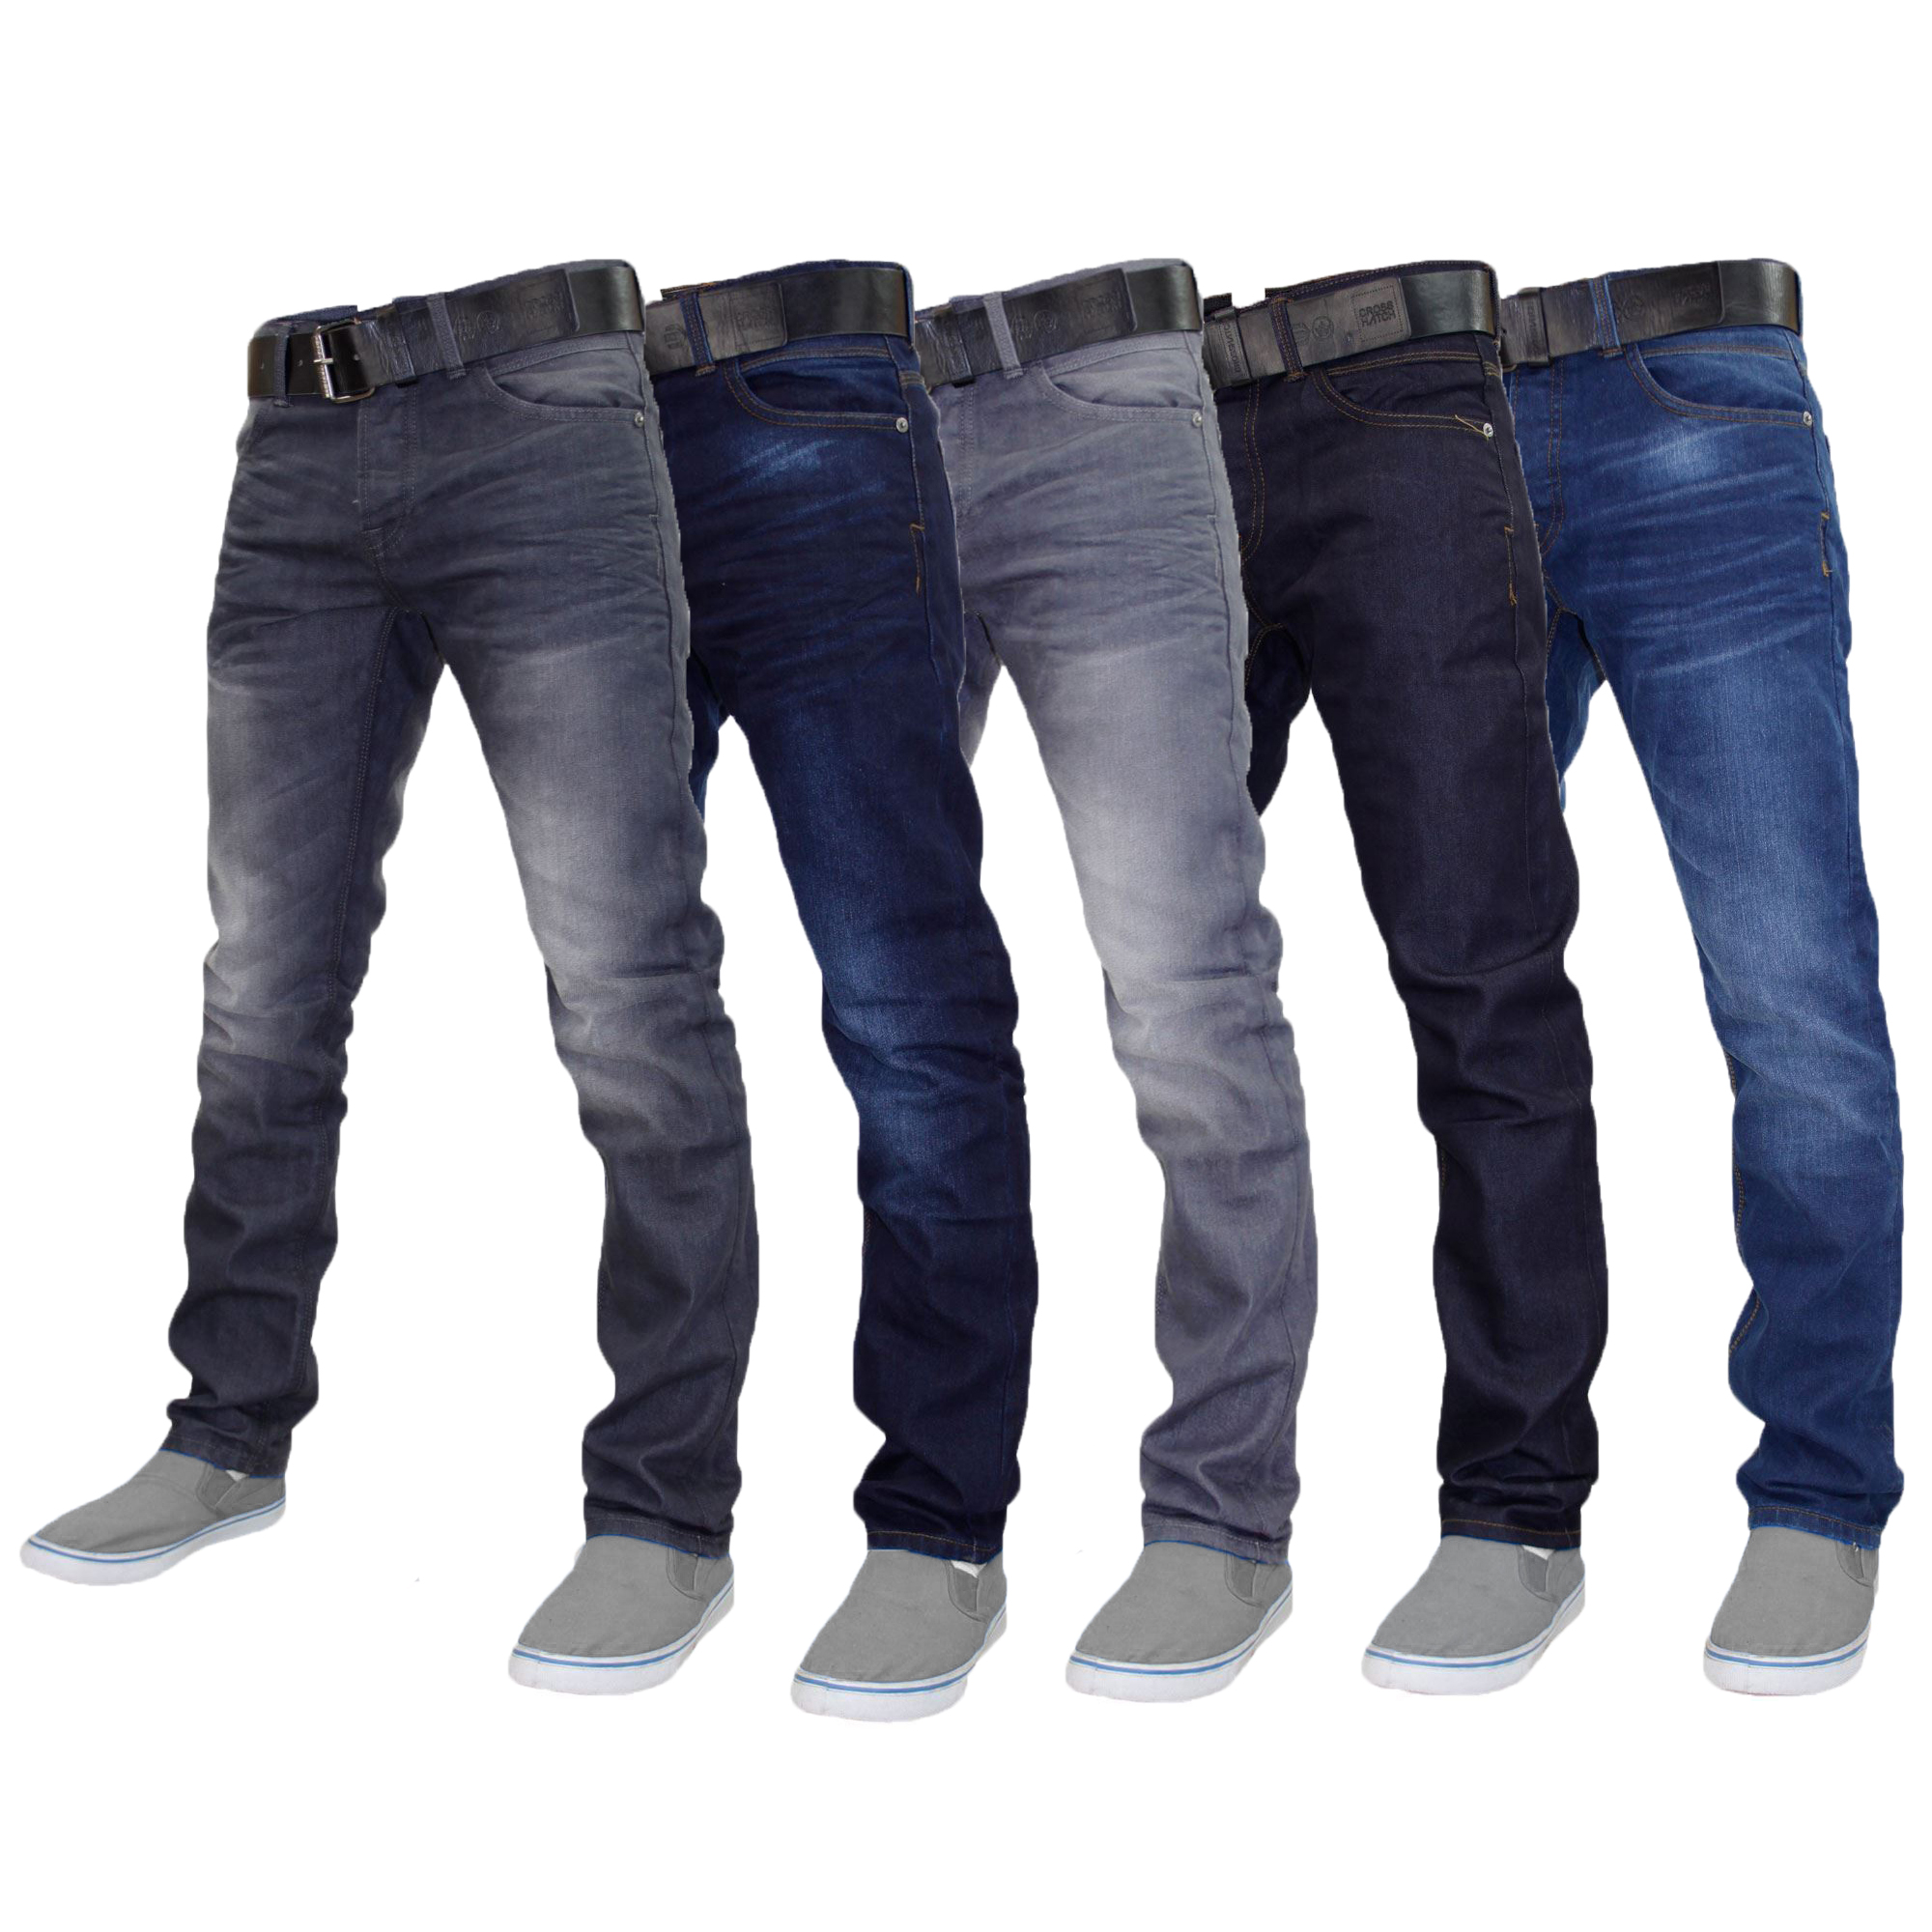 Details about Mens Denim Jeans Crosshatch Wayne Coated Slim Fit FREE BELT Straight Leg Pants